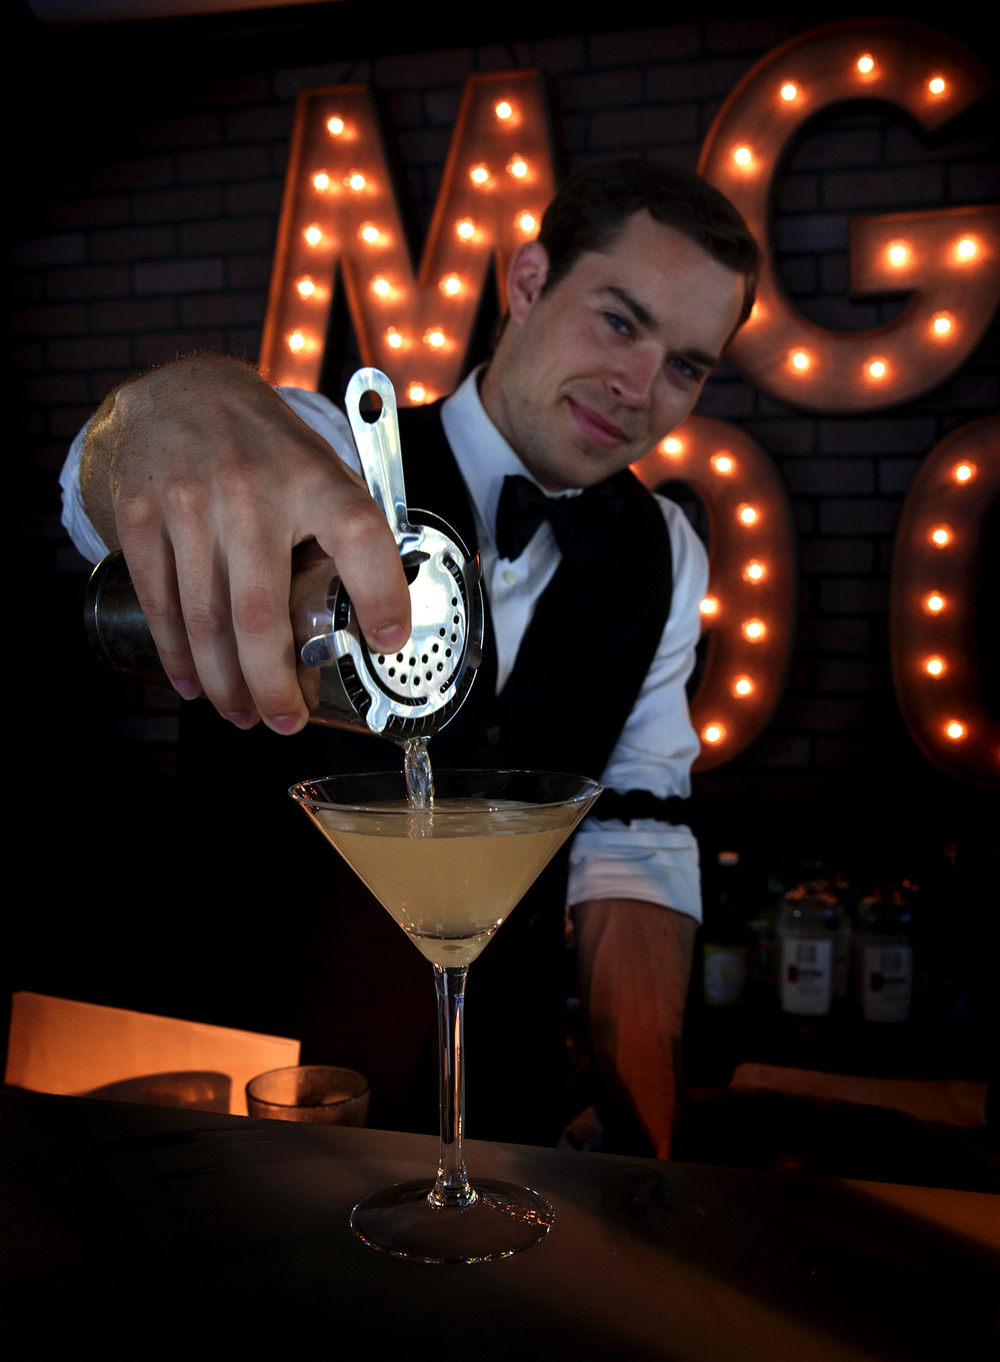 Serving a Dirty Rotten Scoundrel Martini